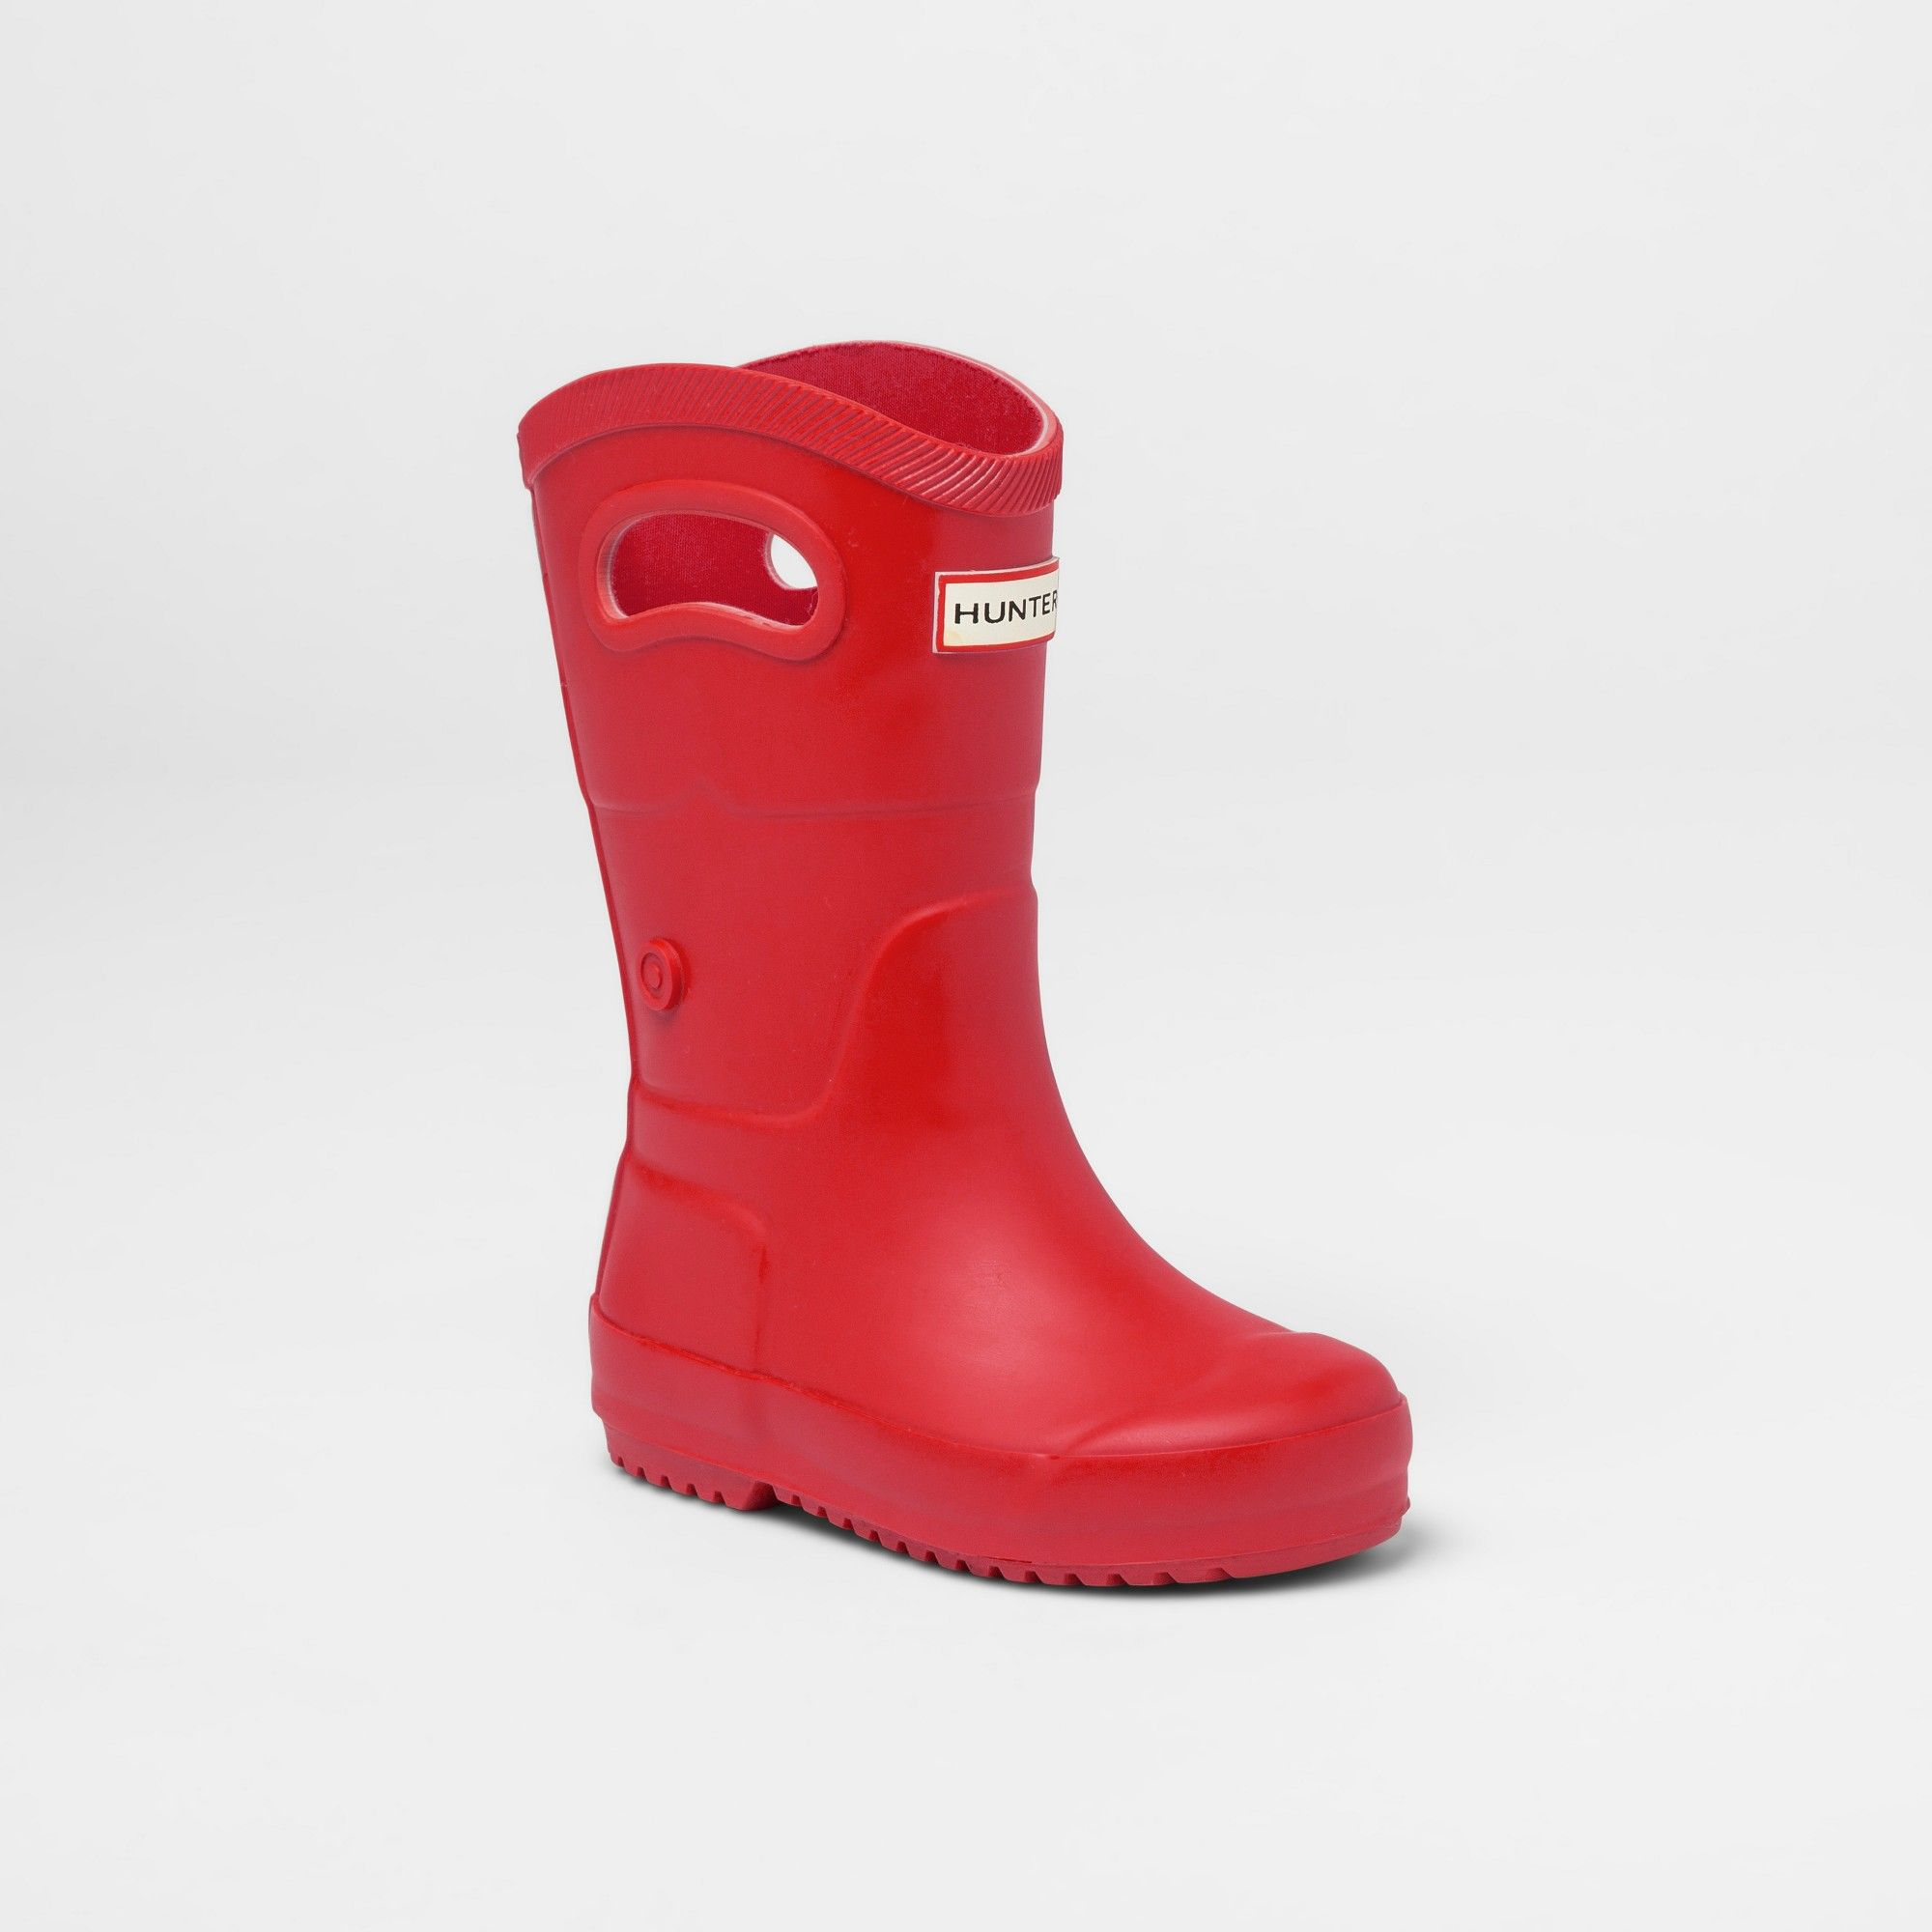 ad670dbc732 Hunter for Target Toddlers  Waterproof Tall Rain Boots - Red 12 ...